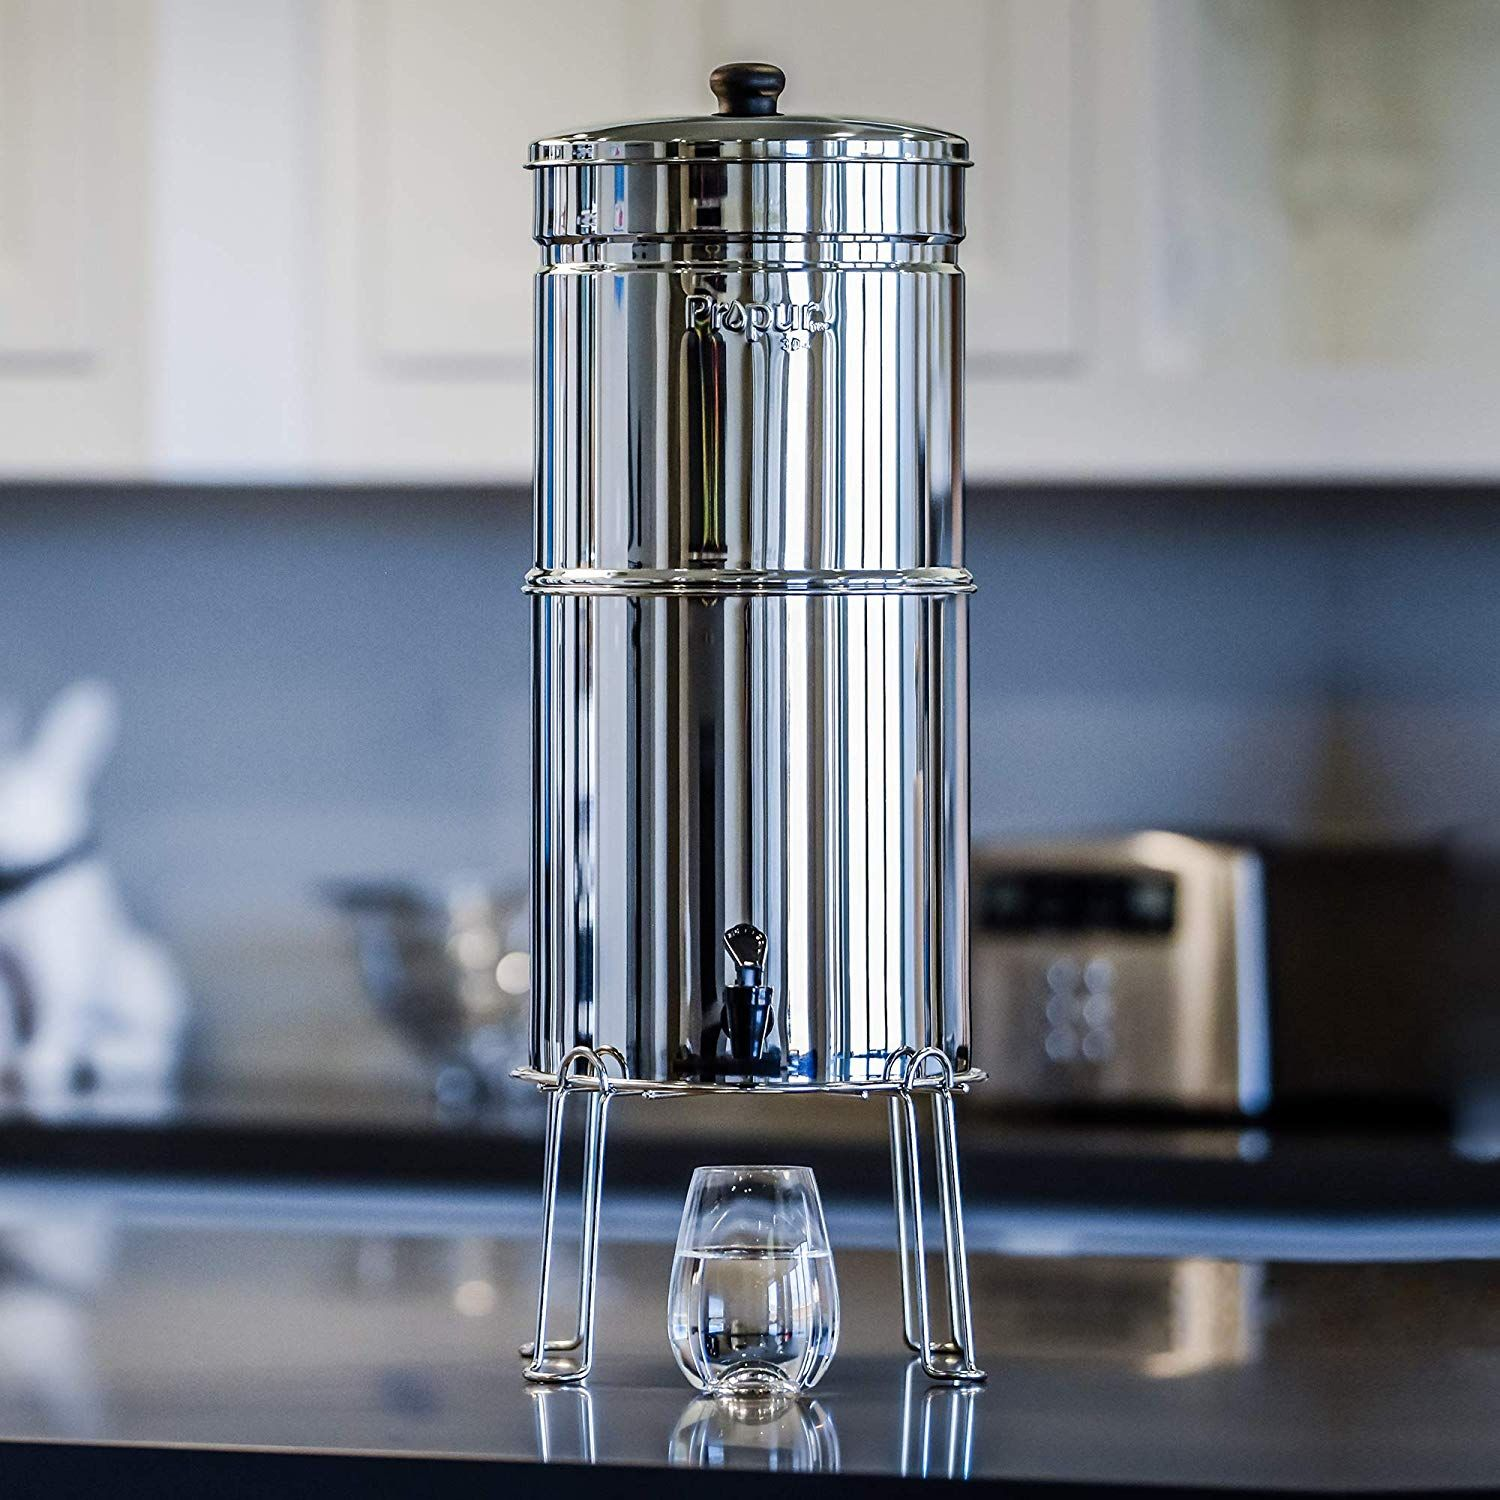 Propur Big Countertop Gravity Water Filter System Removes